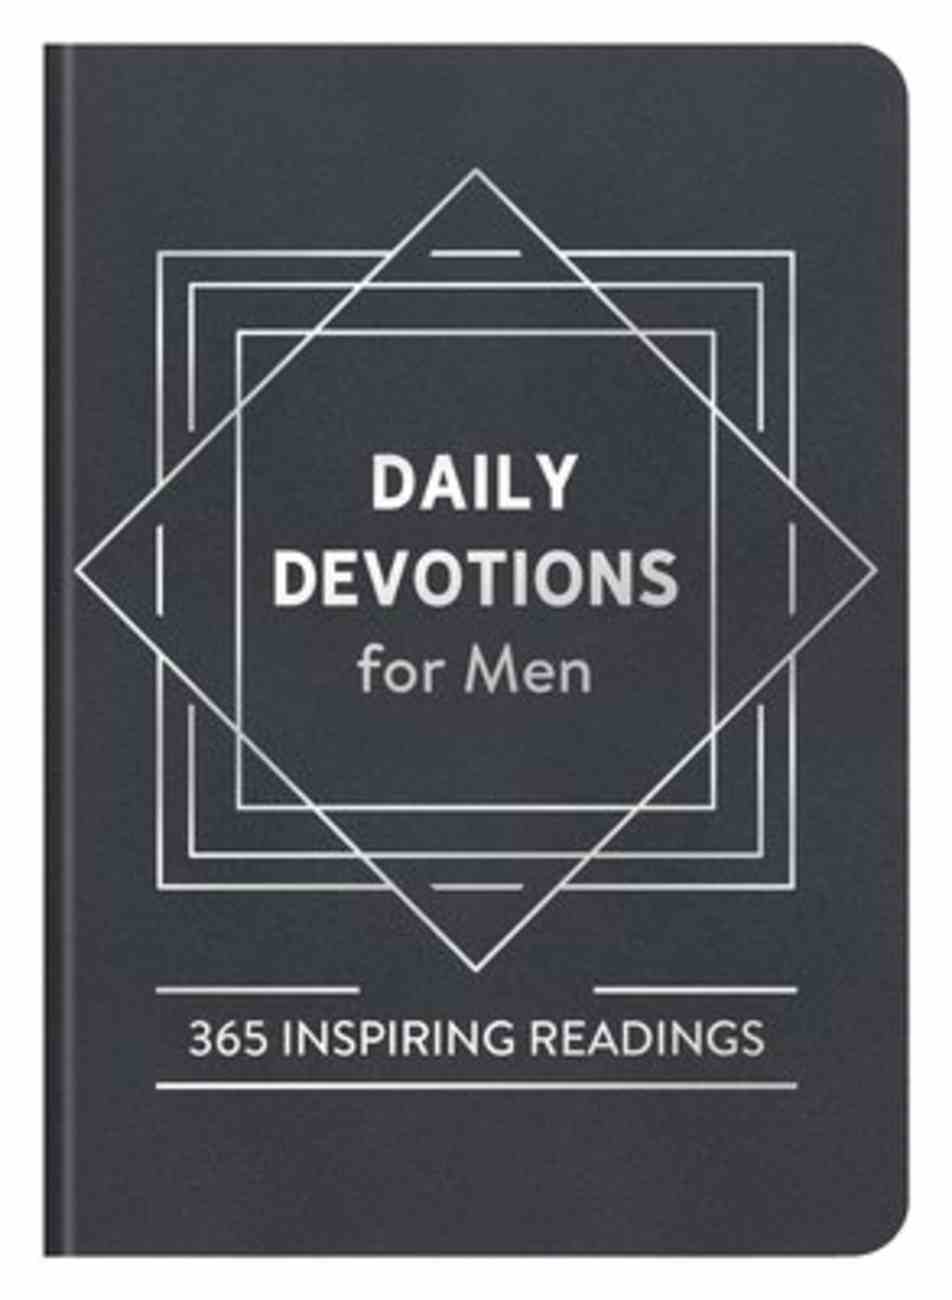 Daily Devotions For Men: 365 Inspiring Readings Imitation Leather